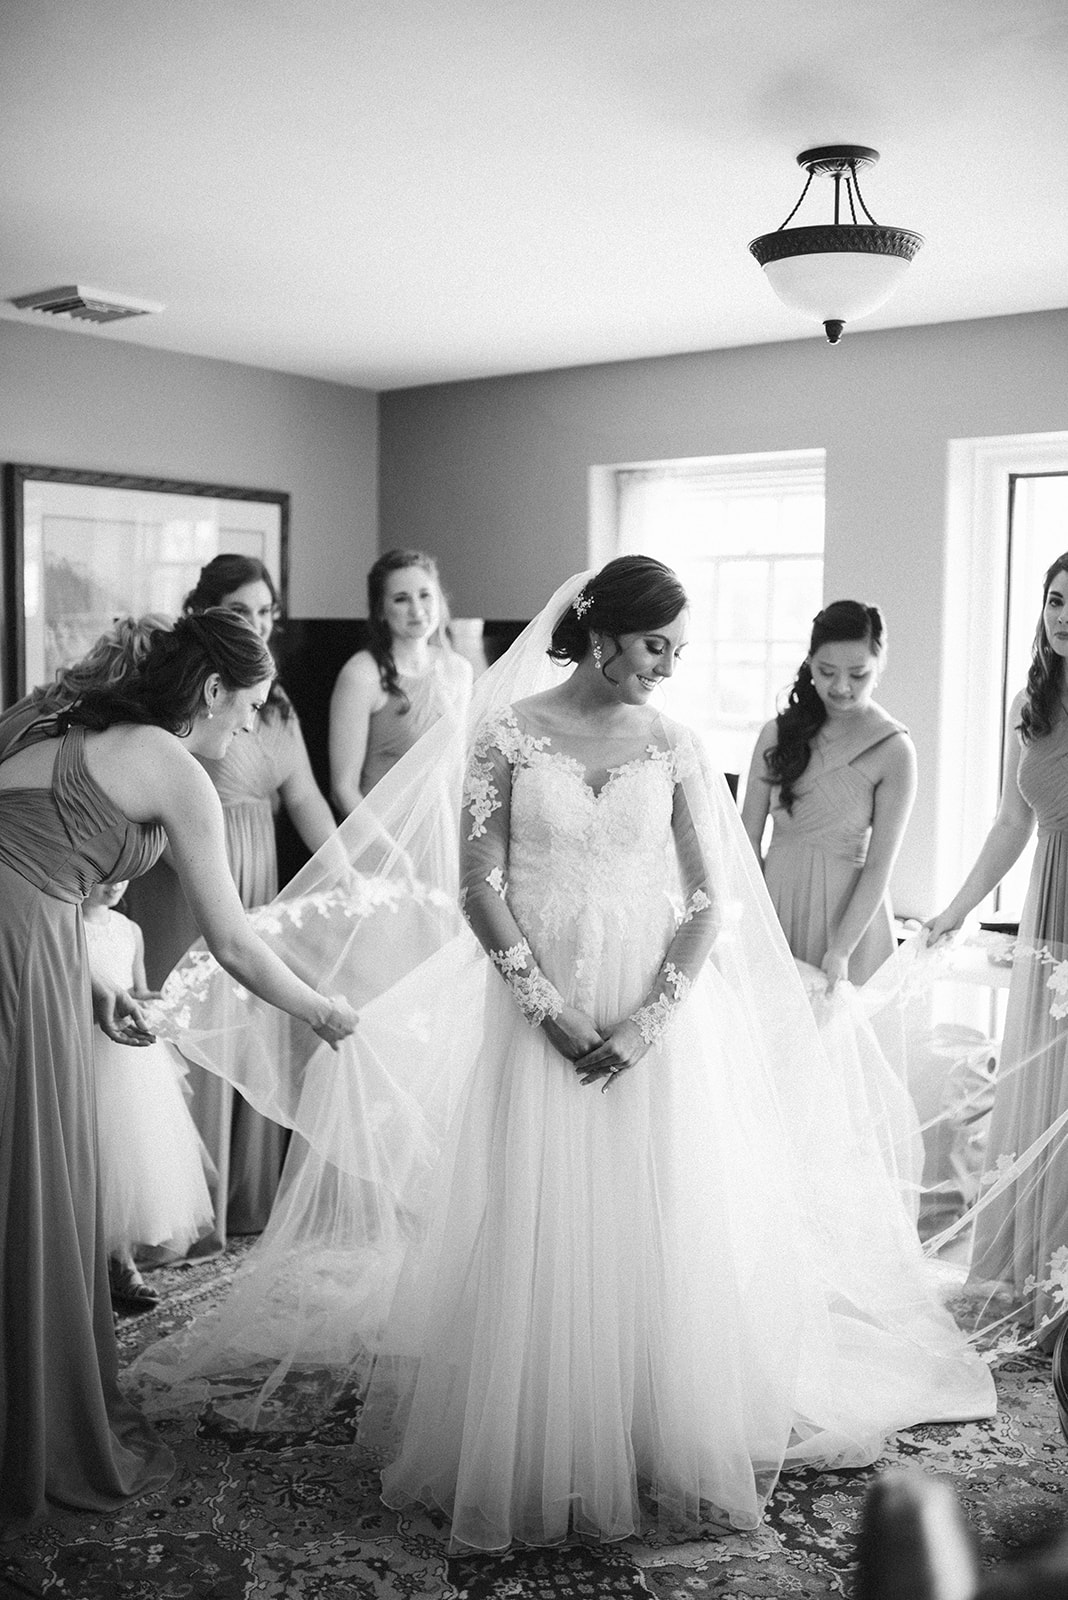 Bride and bridesmaids getting ready at Drumore Estate within their wedding bridal suite.